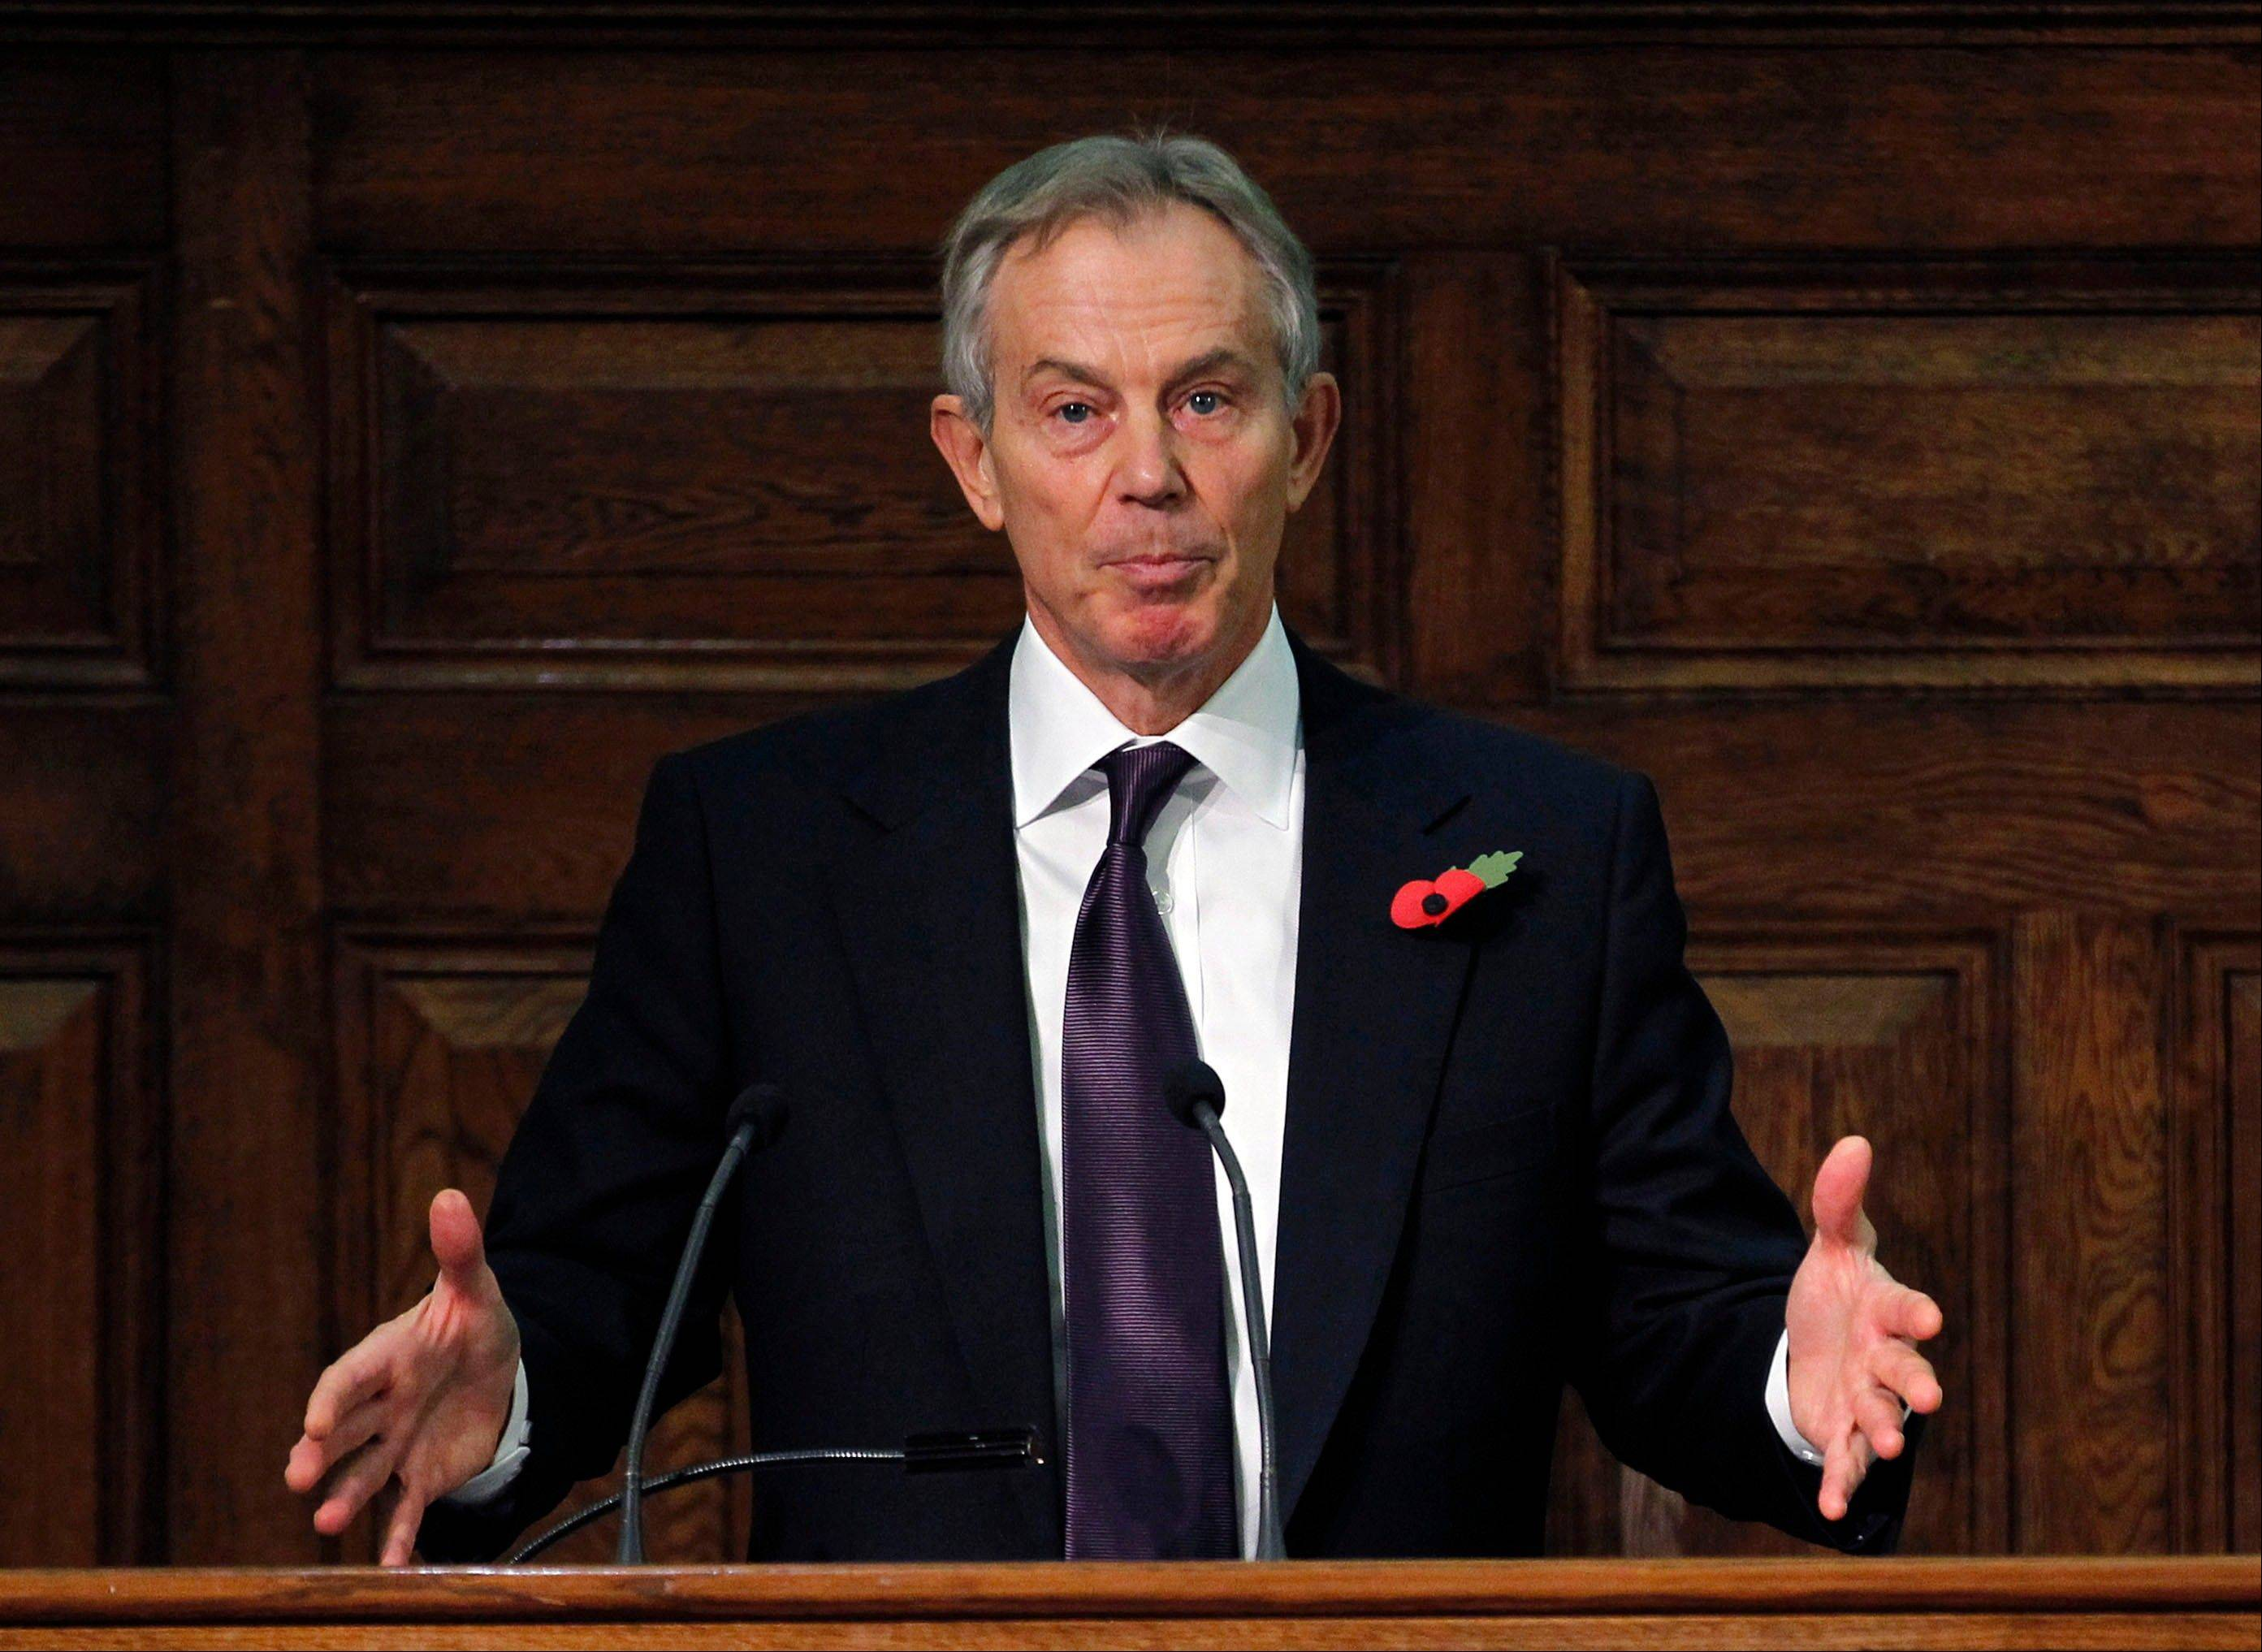 Former British Prime Minister Tony Blair addresses the delegates at the Iraq Britain Business Council�s fourth annual conference in central London Monday. Blair says British forces should be proud of their role in the U.S.-led invasion of Iraq, citing what he claimed is major progress made in the country since the toppling of Saddam Hussein in 2003.